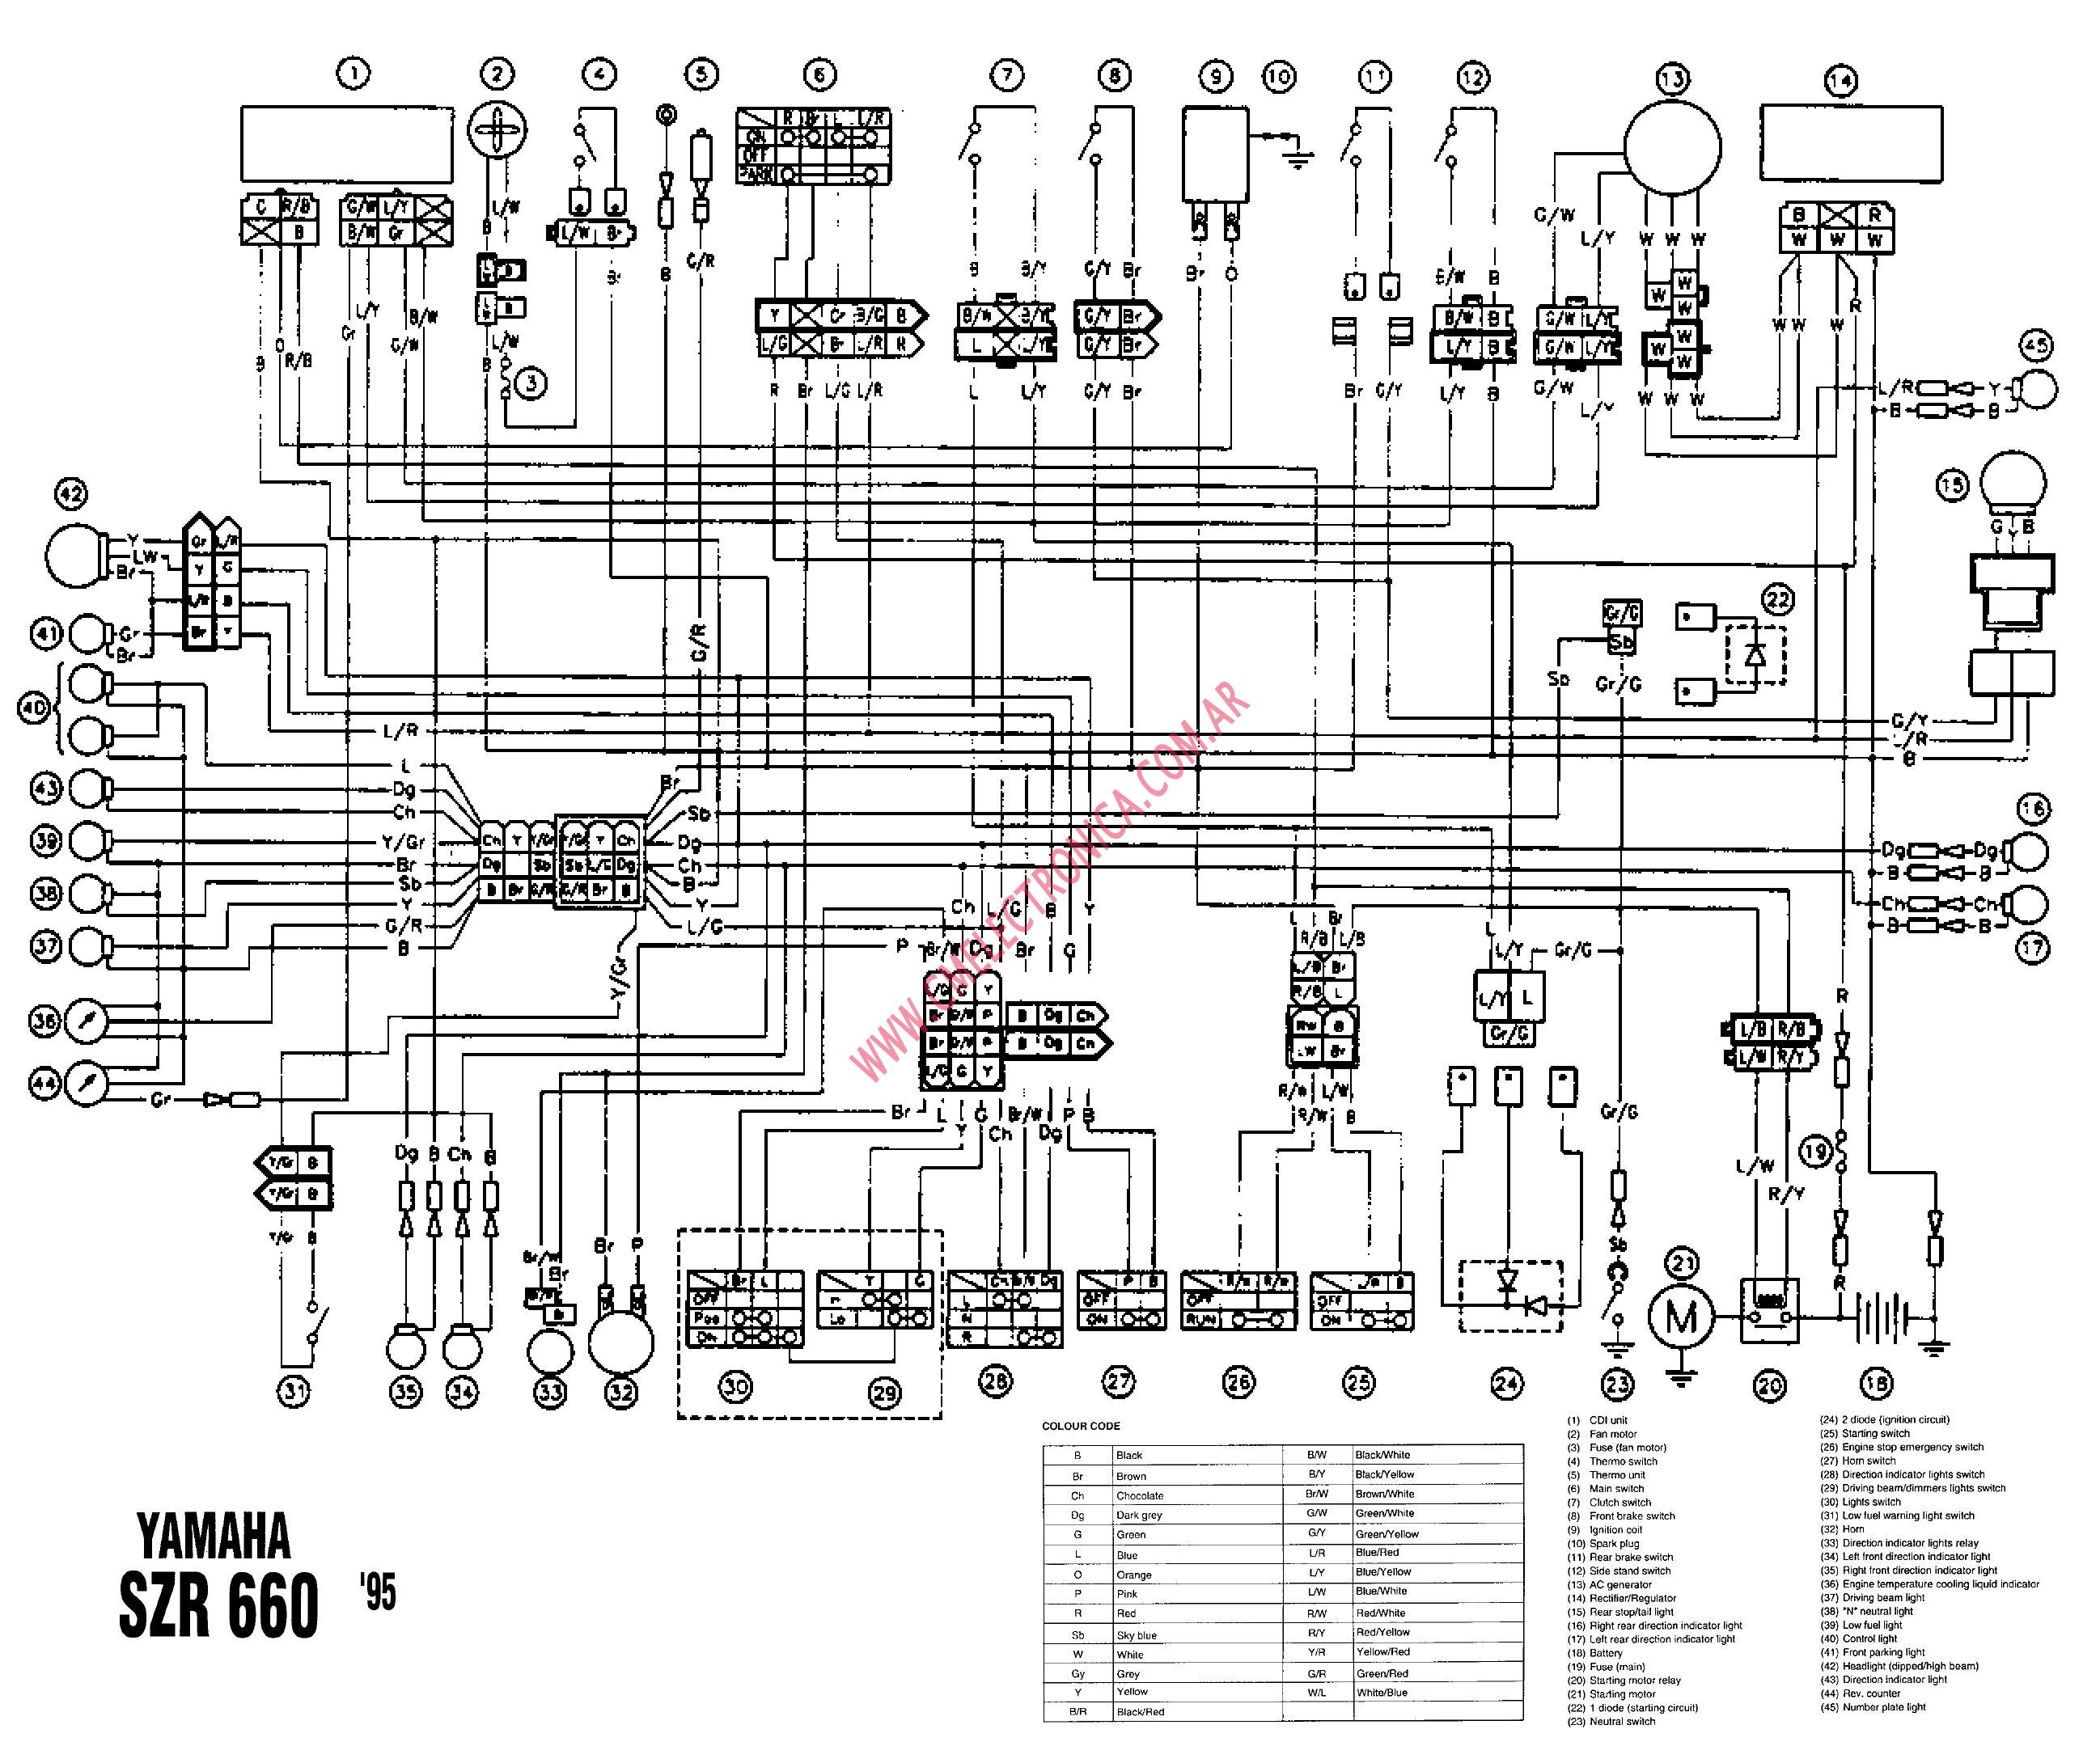 Toyota Sequoia Rse 2002 Aftermarket Radio Harness Jbl Yamaha 660 Rhino Wiring Diagram Diagrams 2006 32 06